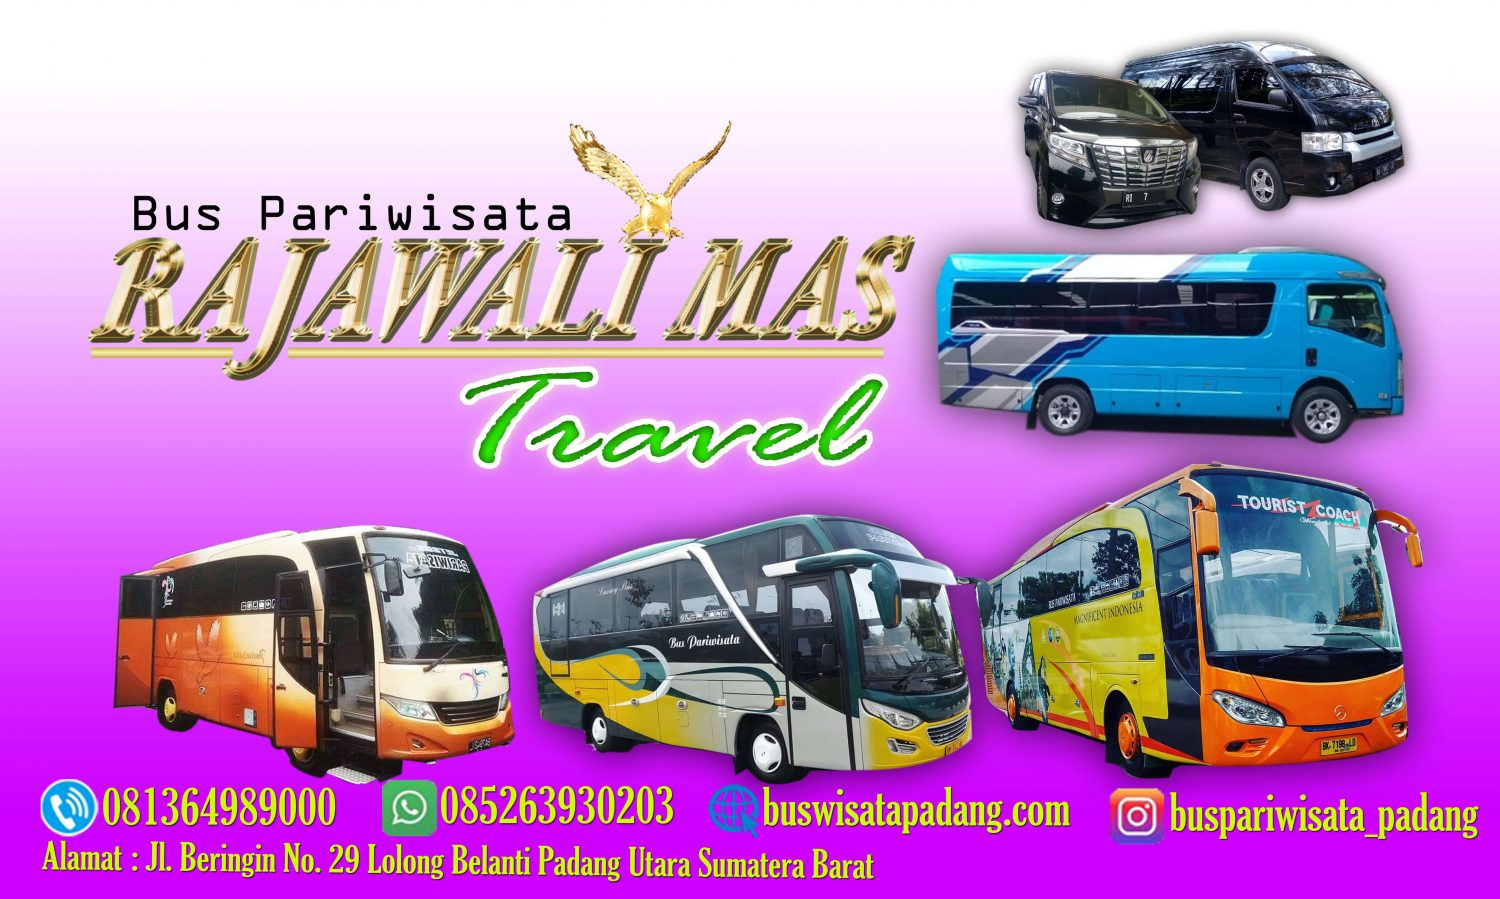 Rajawali Mas Travel